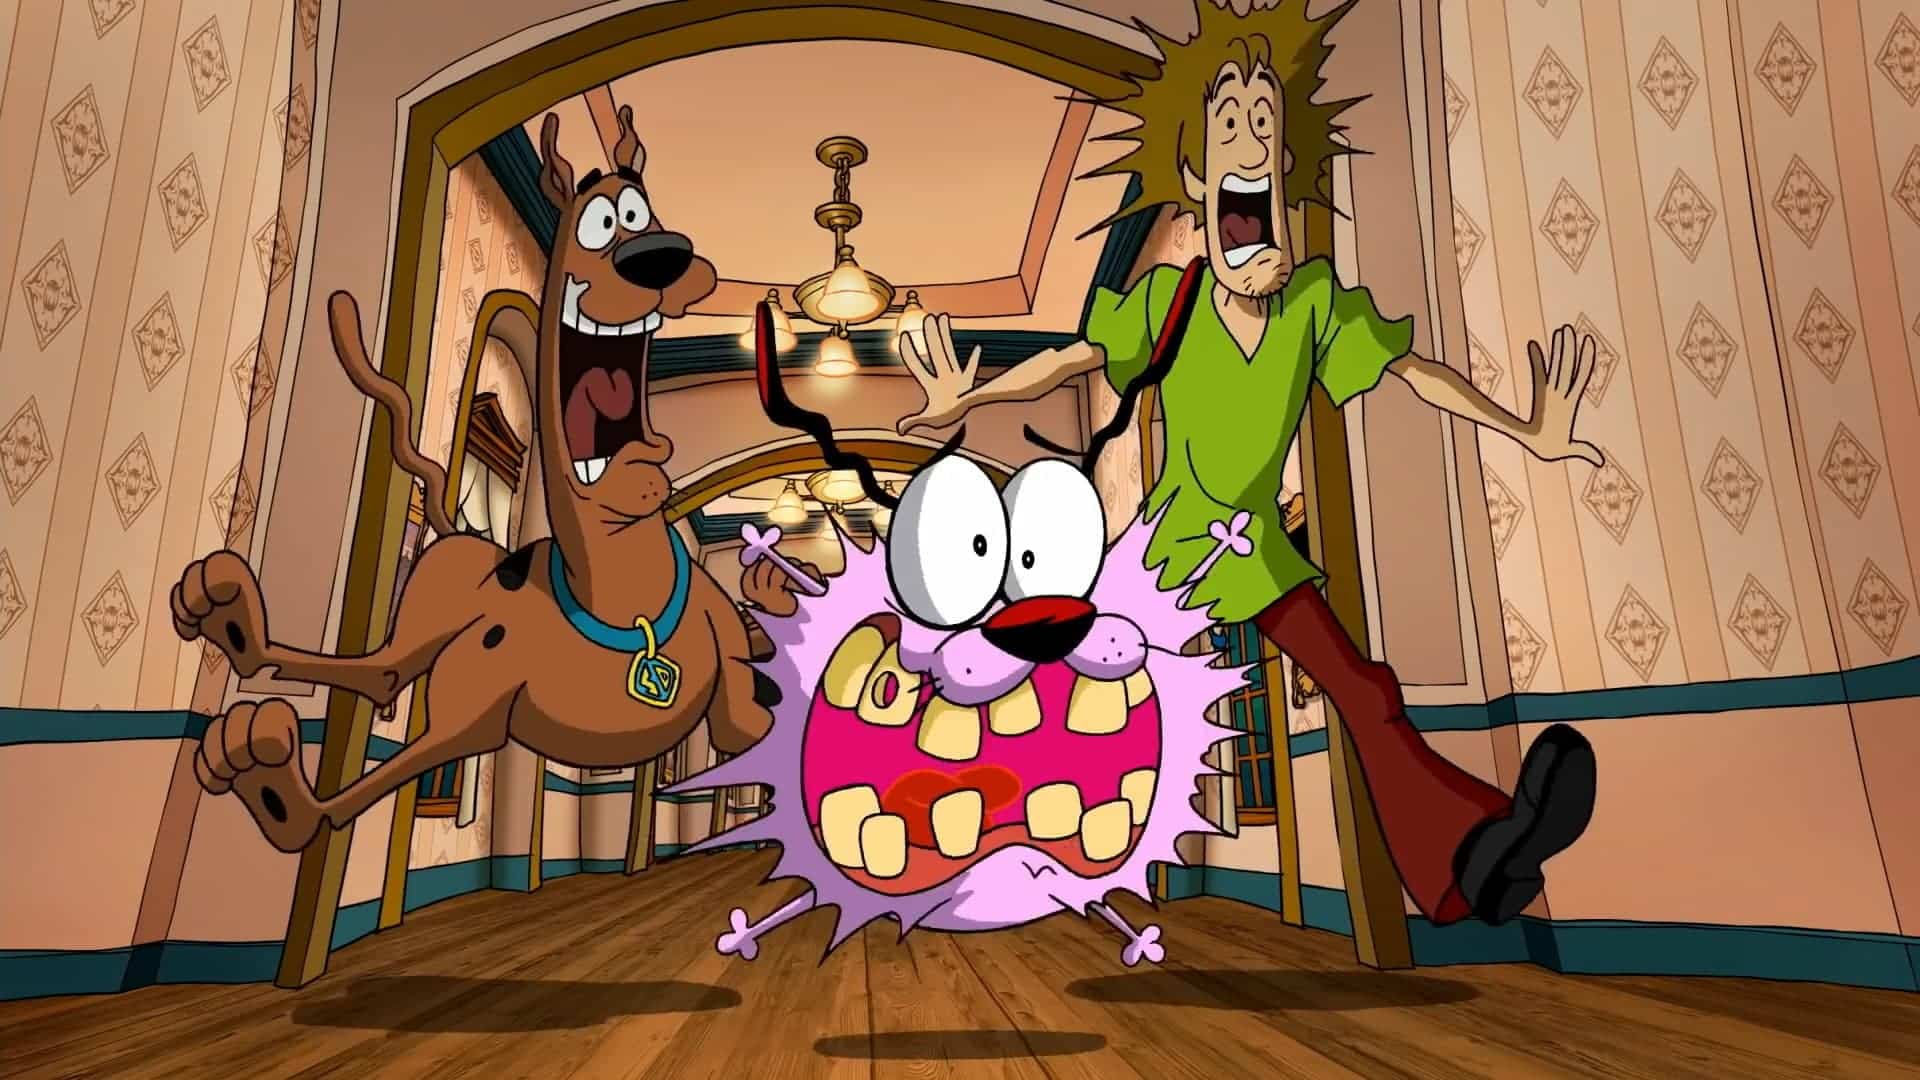 straight-outta-nowhere-scooby-doo-meets-courage-the-cowardly-dog-258785